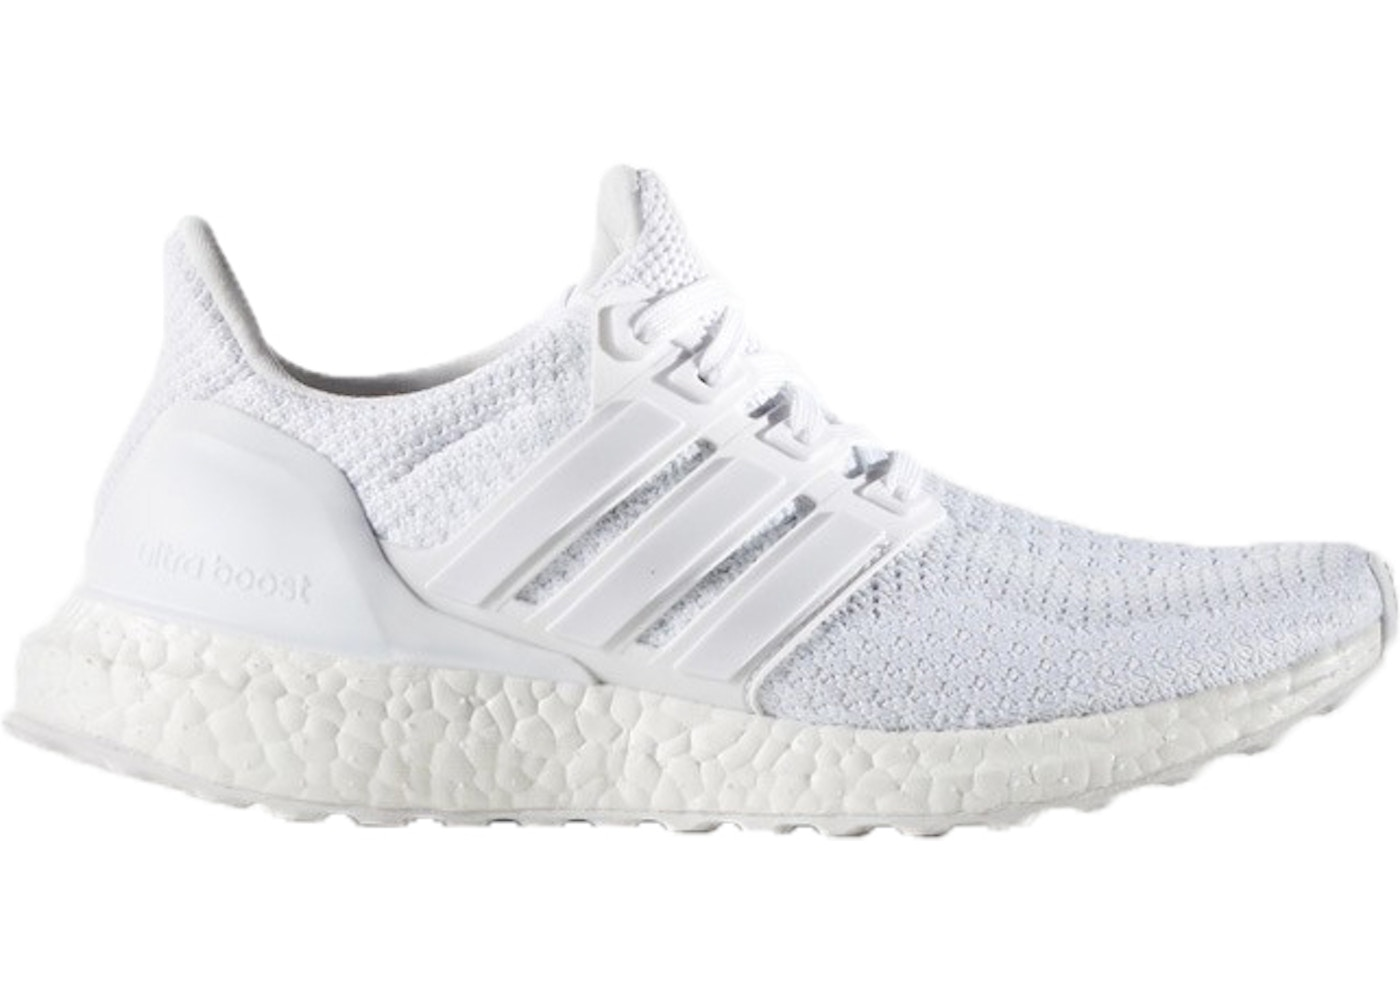 new product 6d468 ed812 adidas Ultra Boost 2.0 Shoes - Price Premium